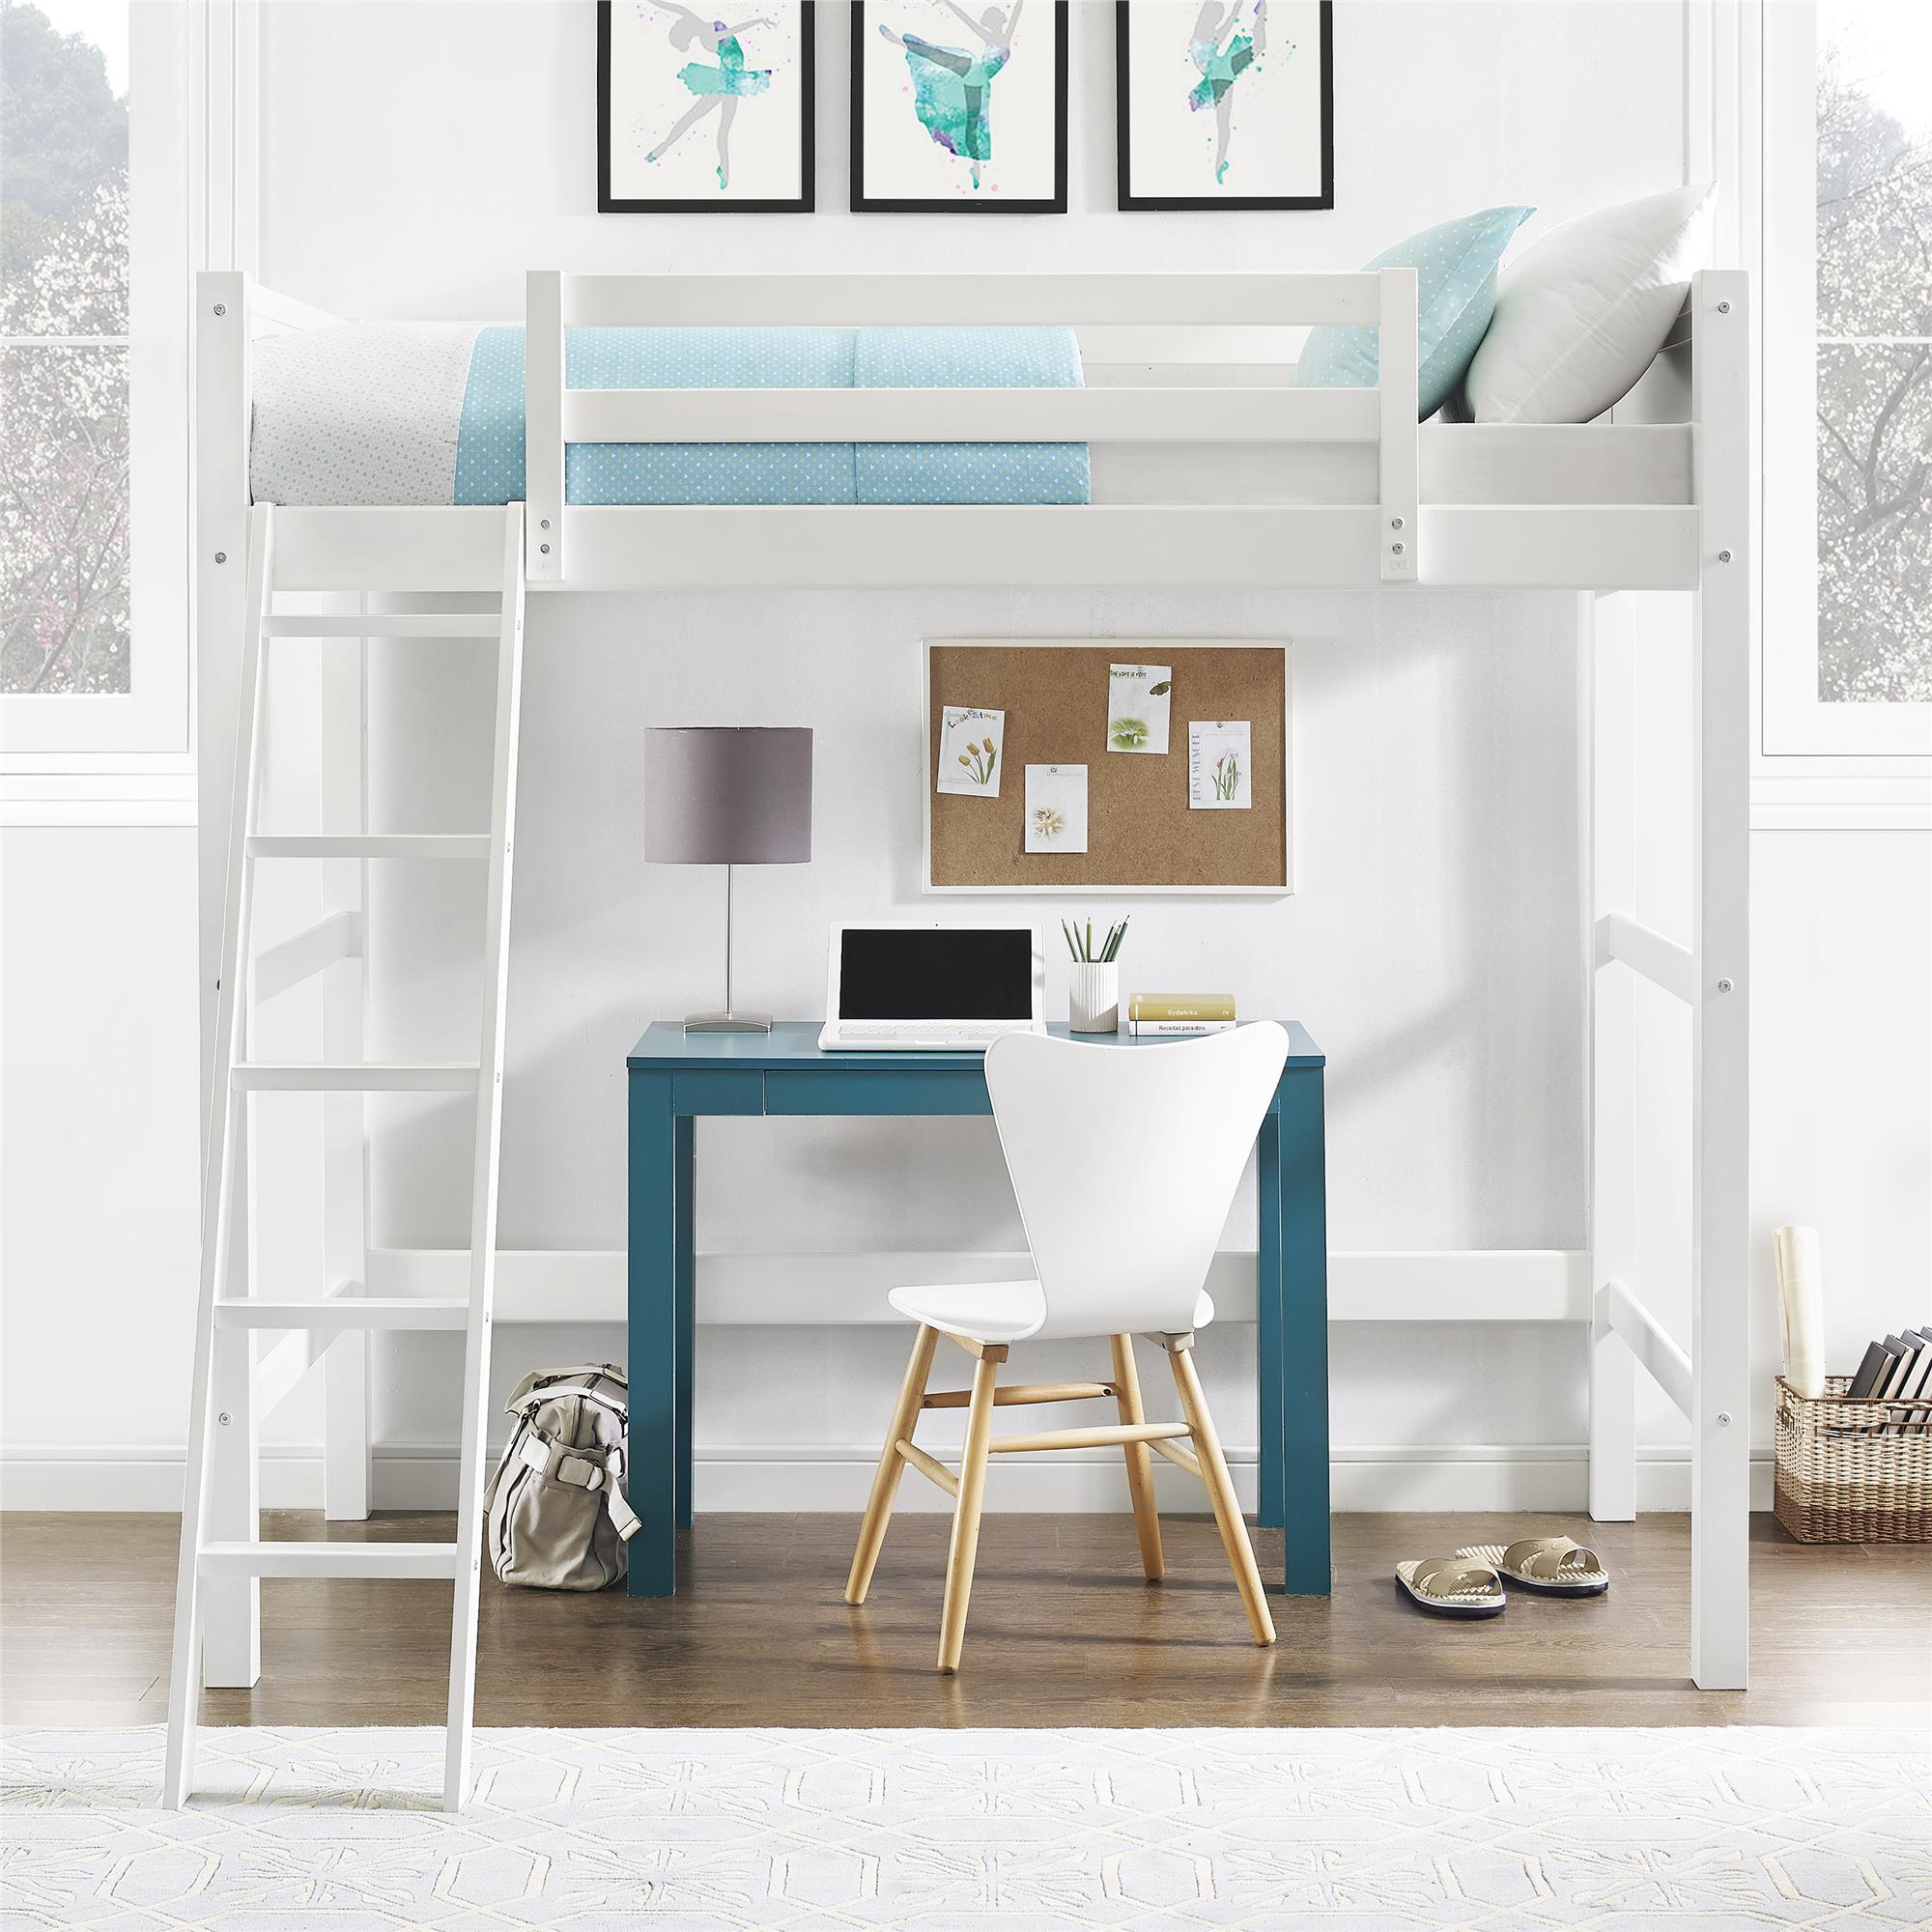 loft bed frame for kids teens girls boys twin size wood lofted beds white modern 65857150568 ebay. Black Bedroom Furniture Sets. Home Design Ideas